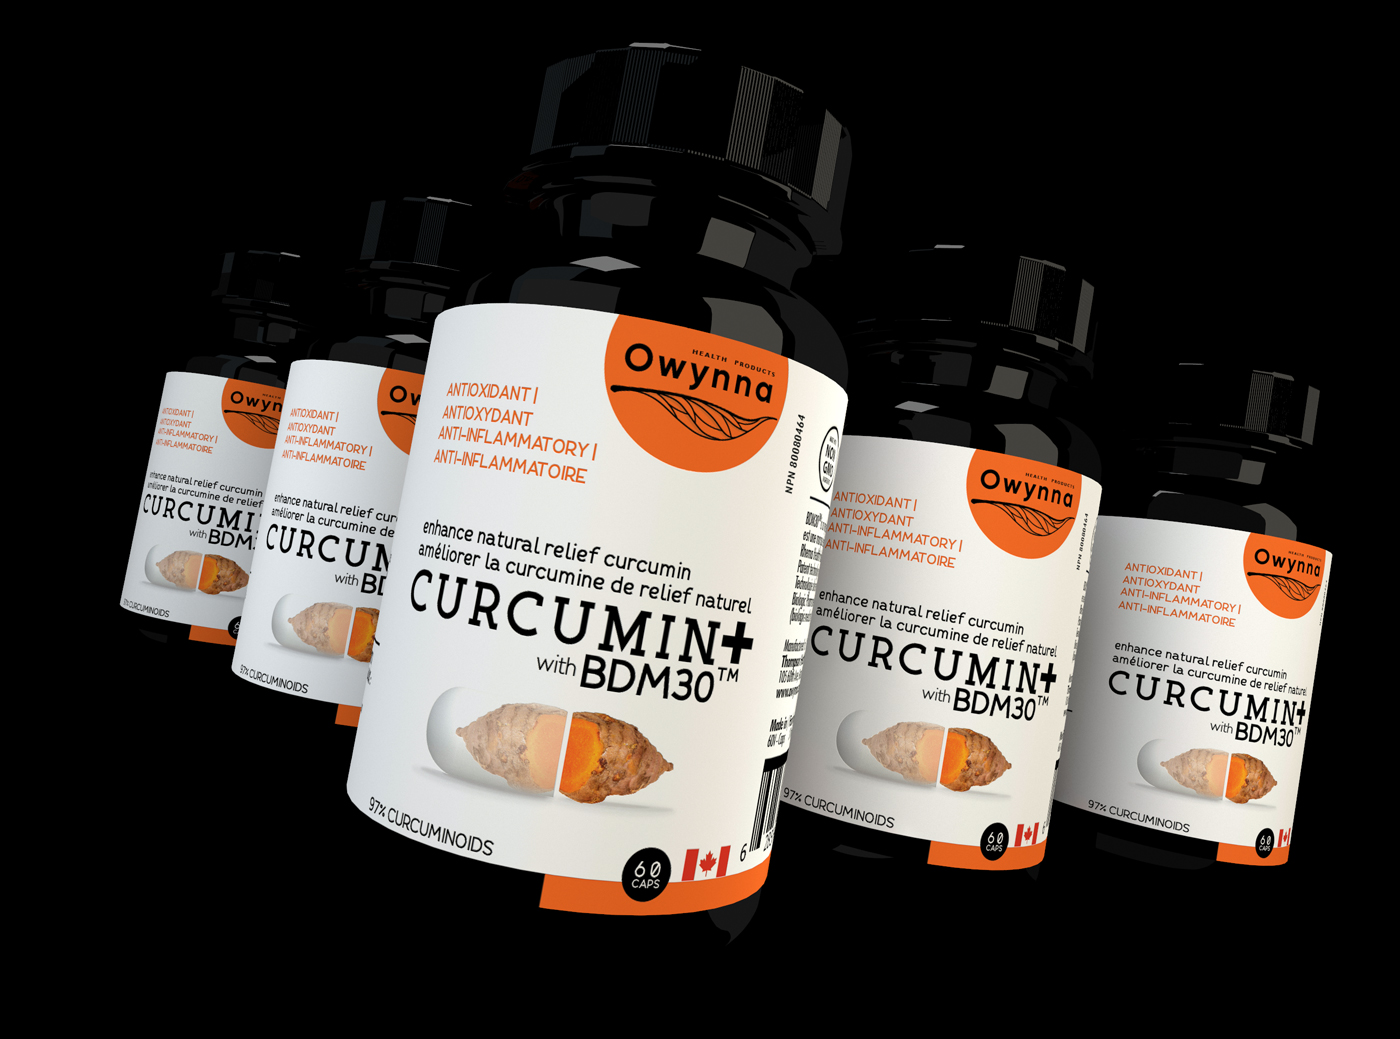 Healthy Lifestyle With New Canadian Curcumin Supplement